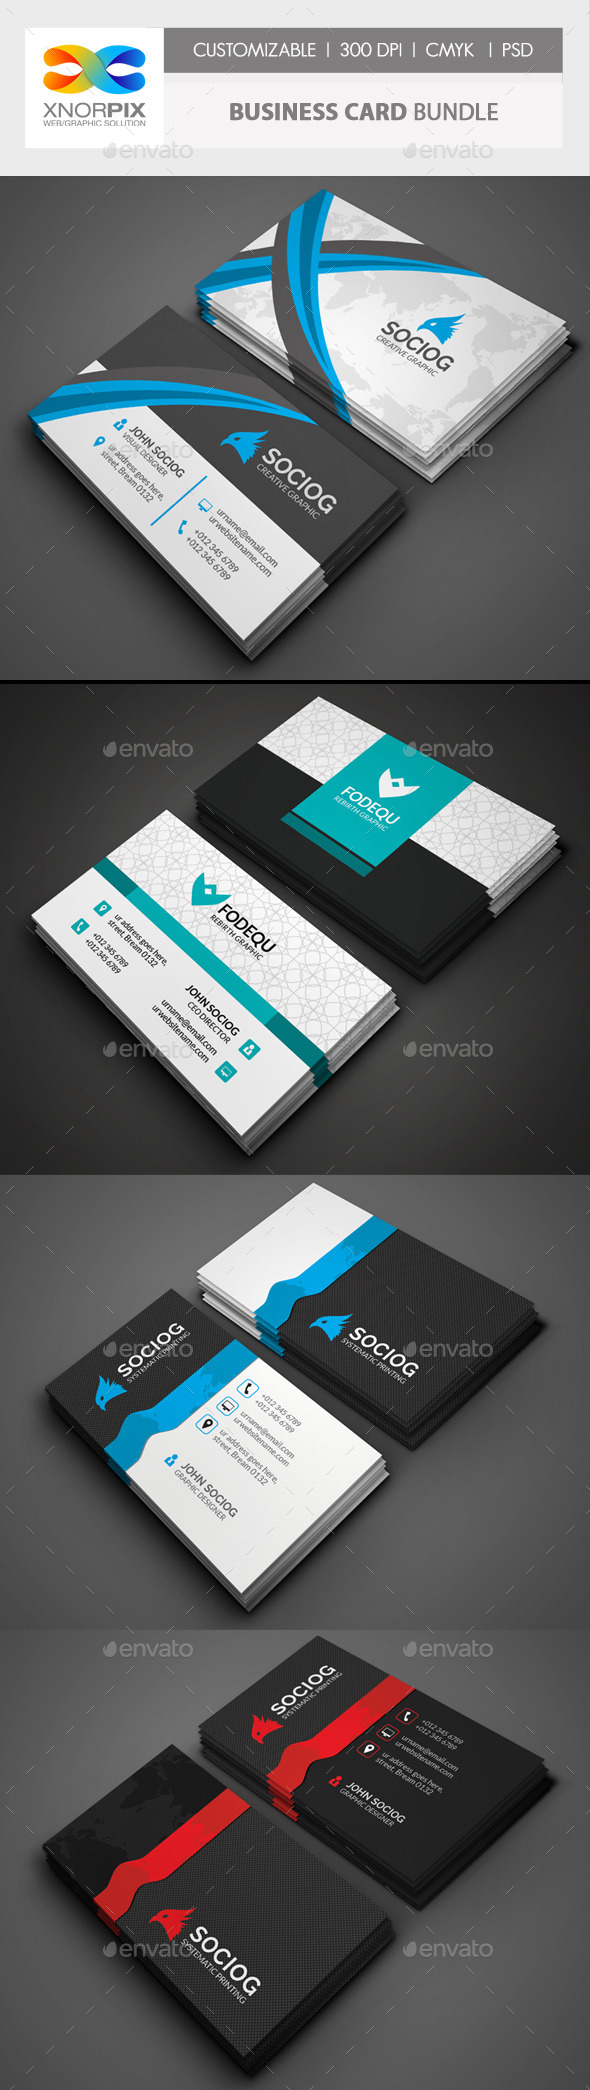 Business Card Bundle 3 in 1-Vol 47 - Corporate Business Cards